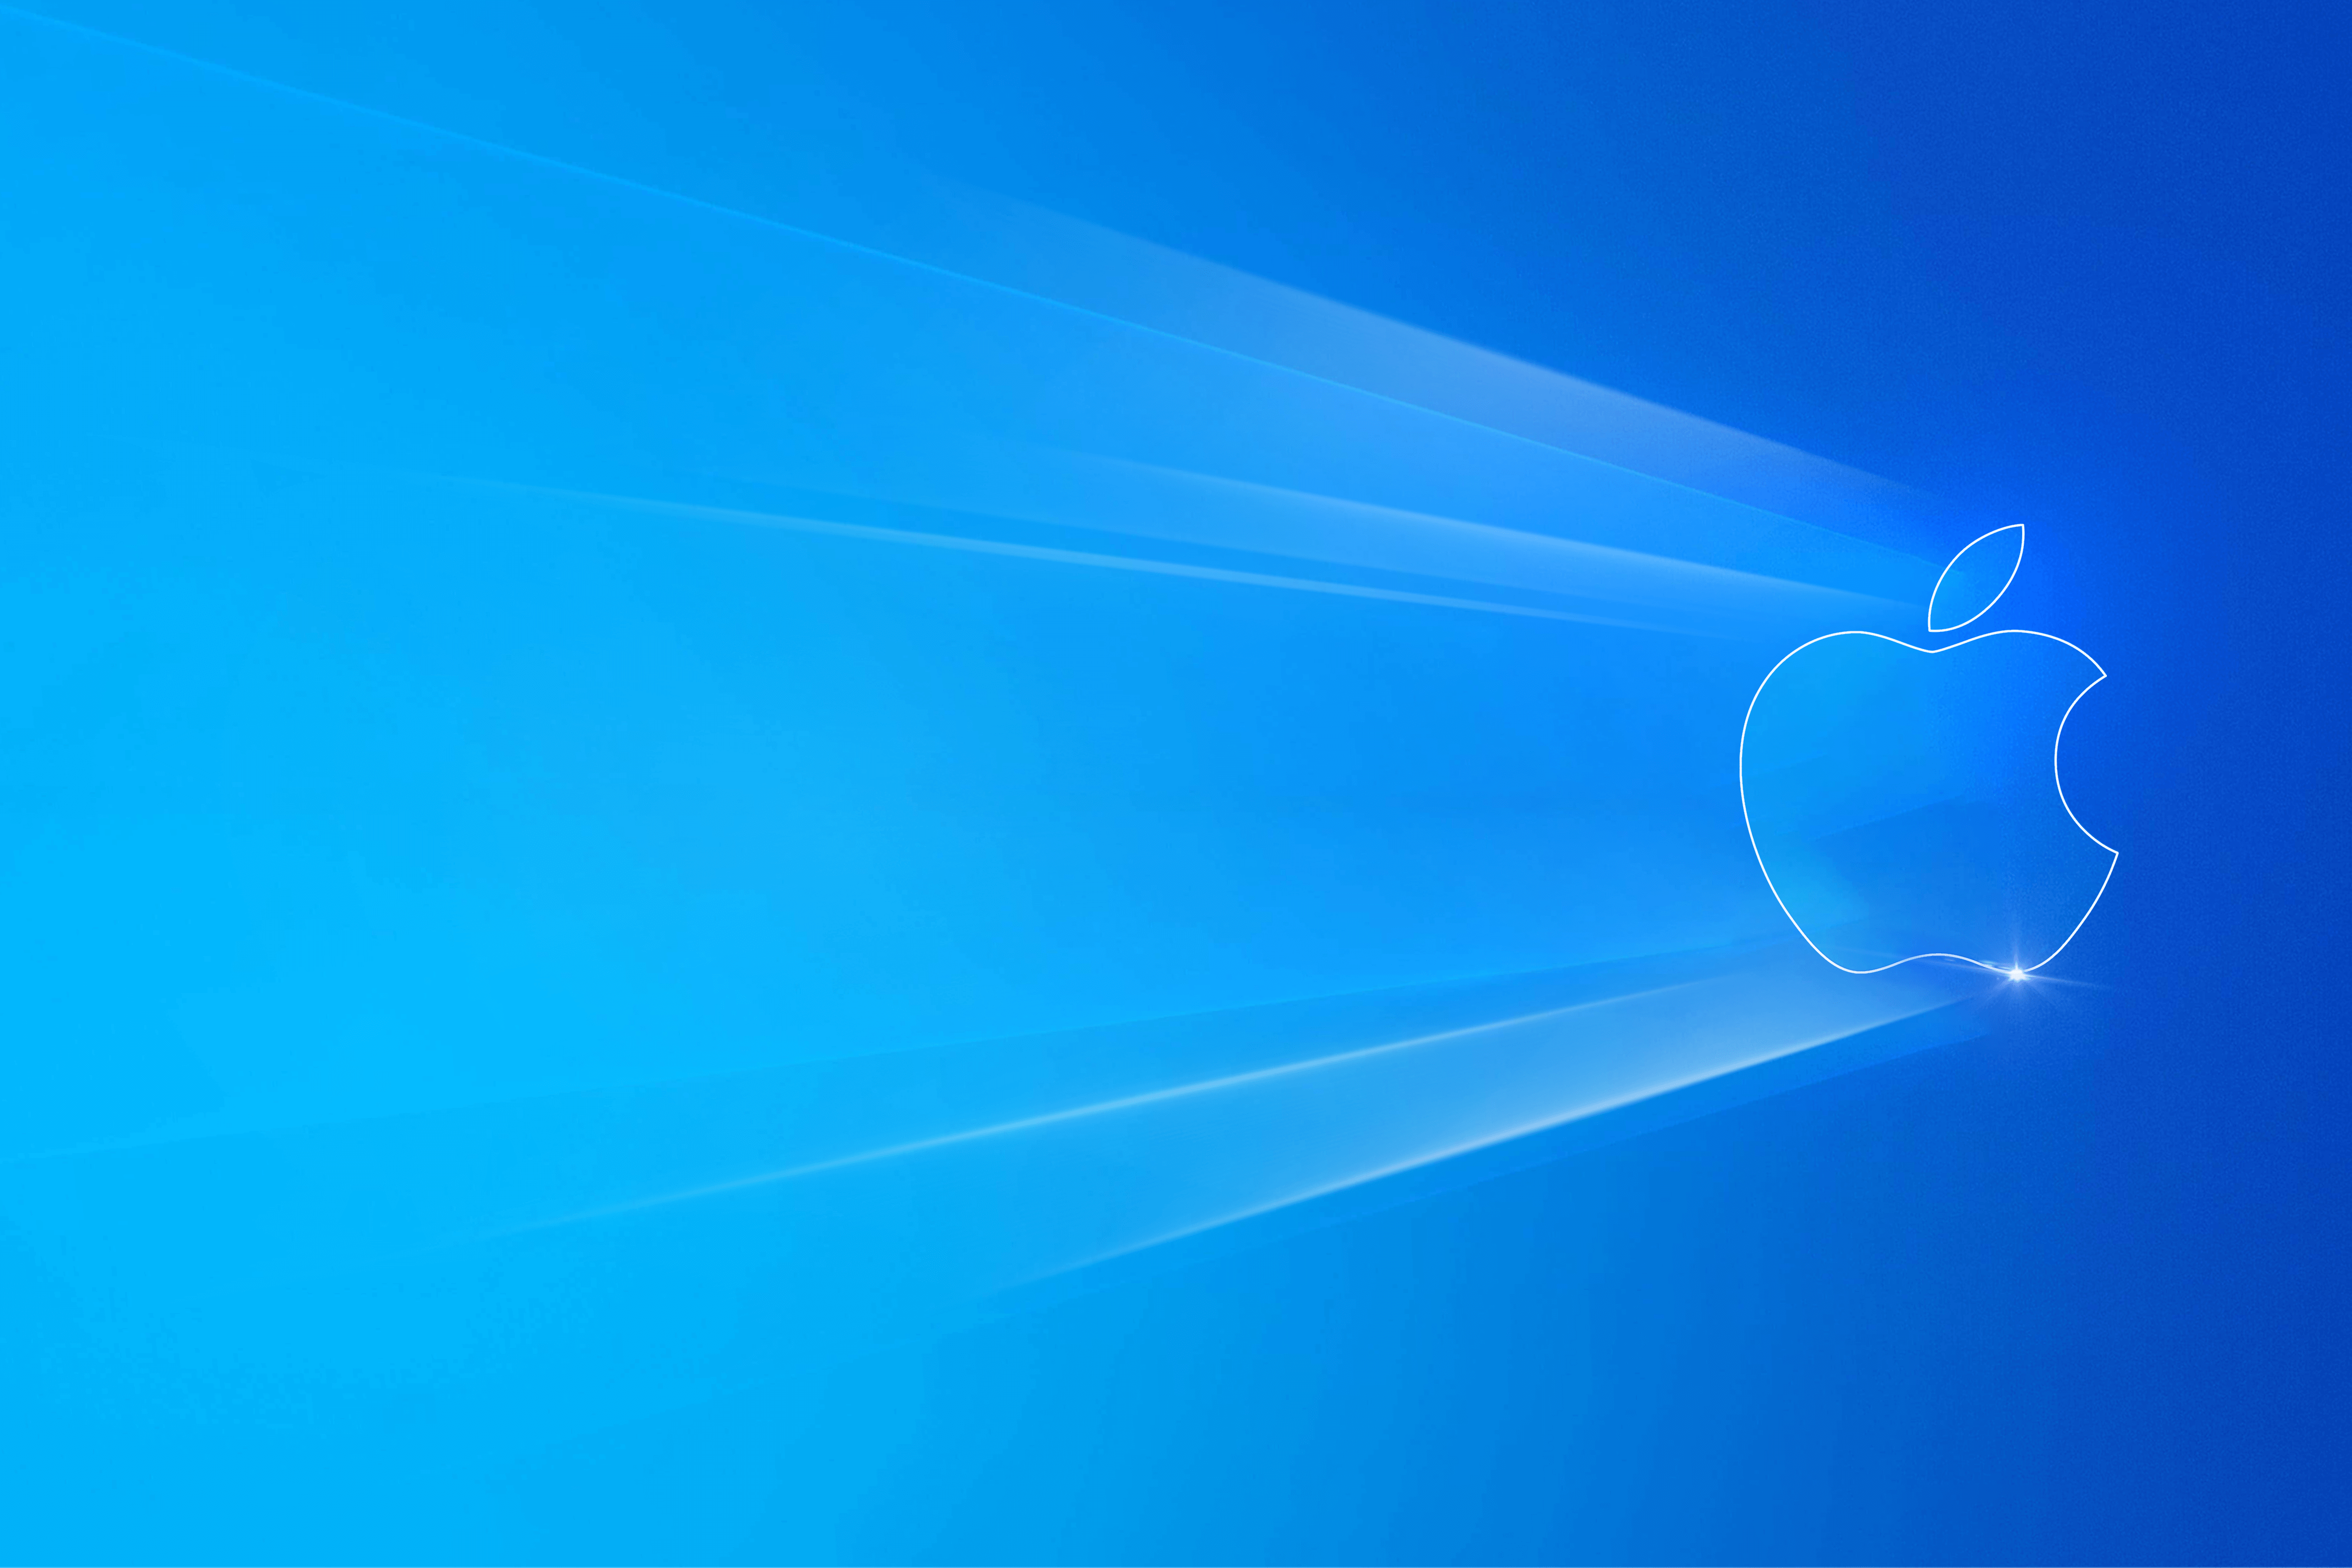 Windows 10 Light Apple By Johnny Leo Wallpapers Wallpaperhub